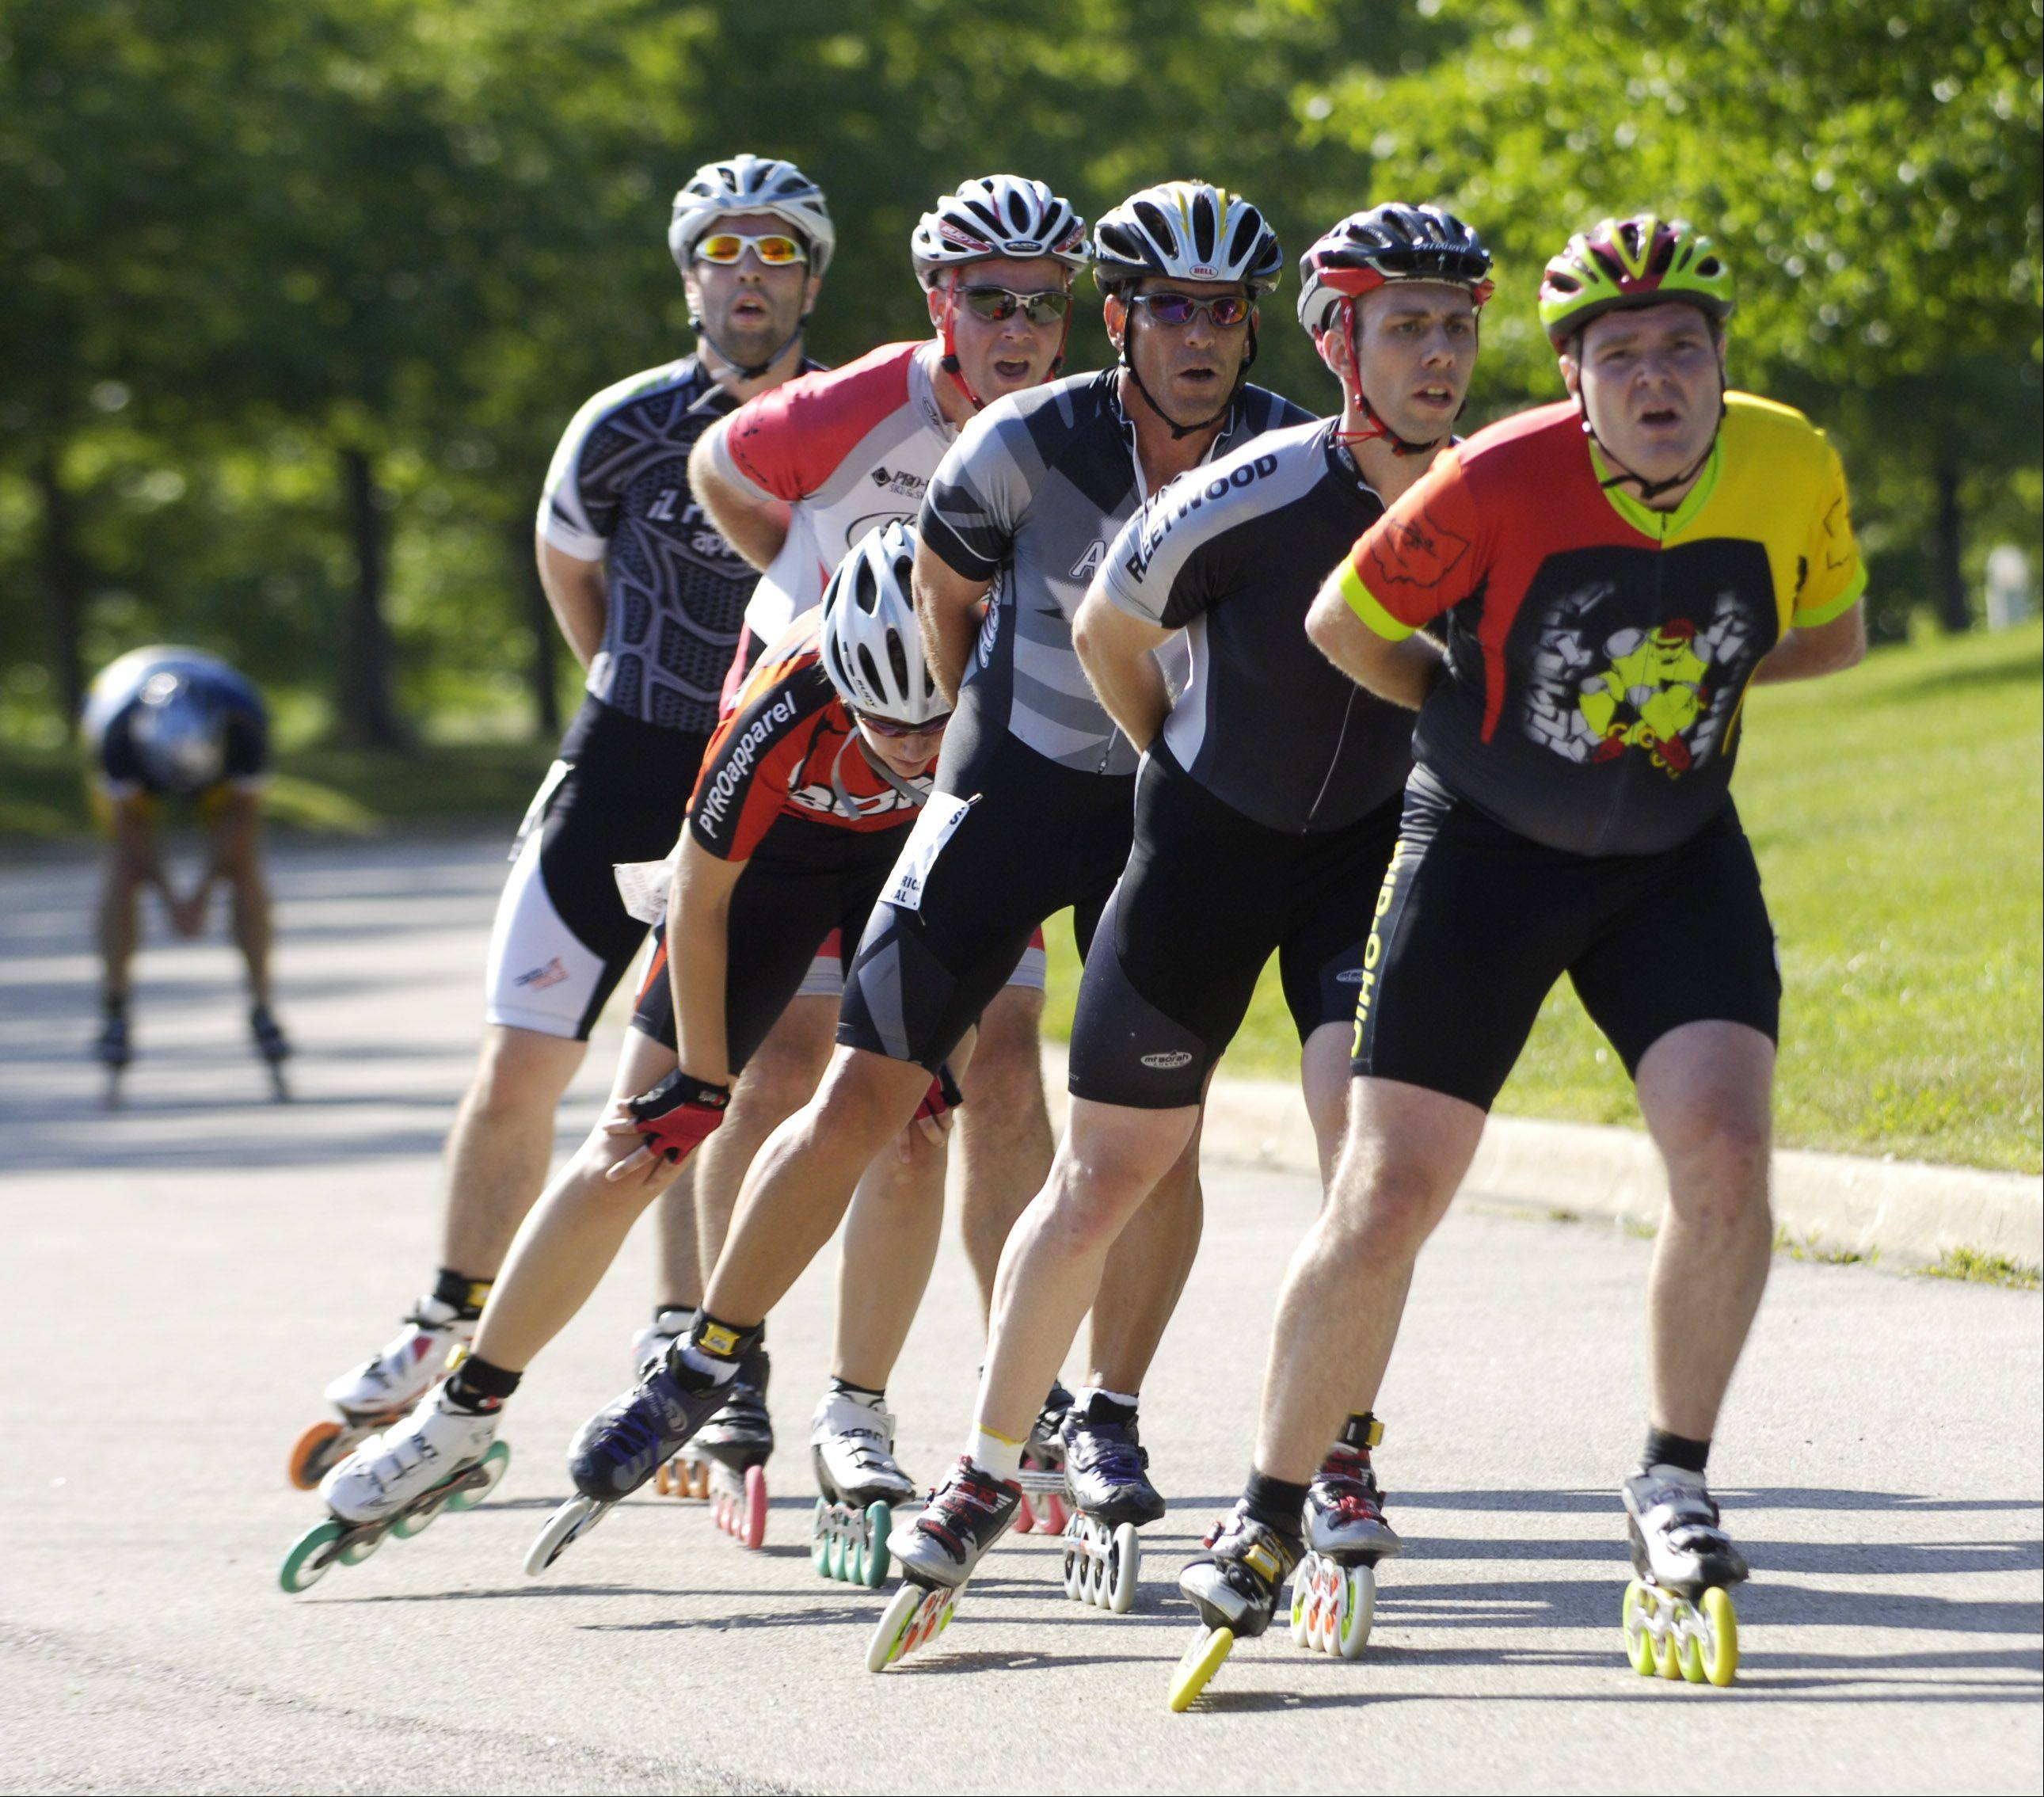 Racers in the pro inline skate tour 10k circuit race are bunched tightly as they roll downhill at the Alexian Brothers Fitness for America Sports Festival.